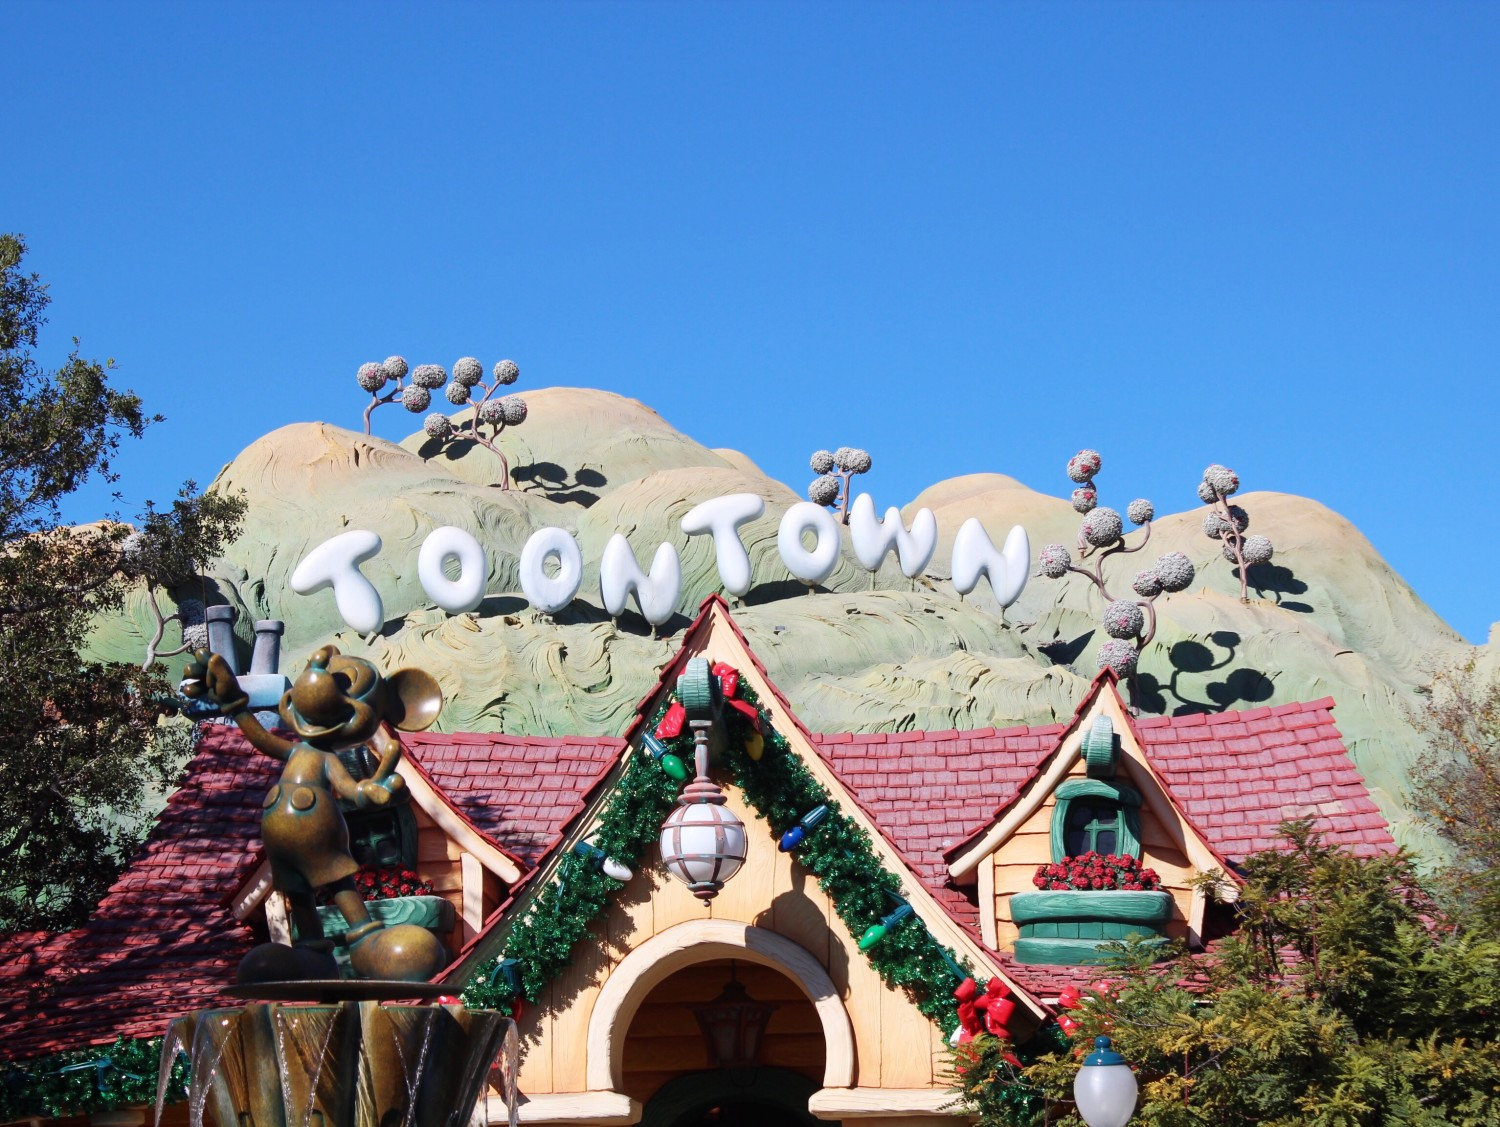 Disneyland Toontown During the Holidays